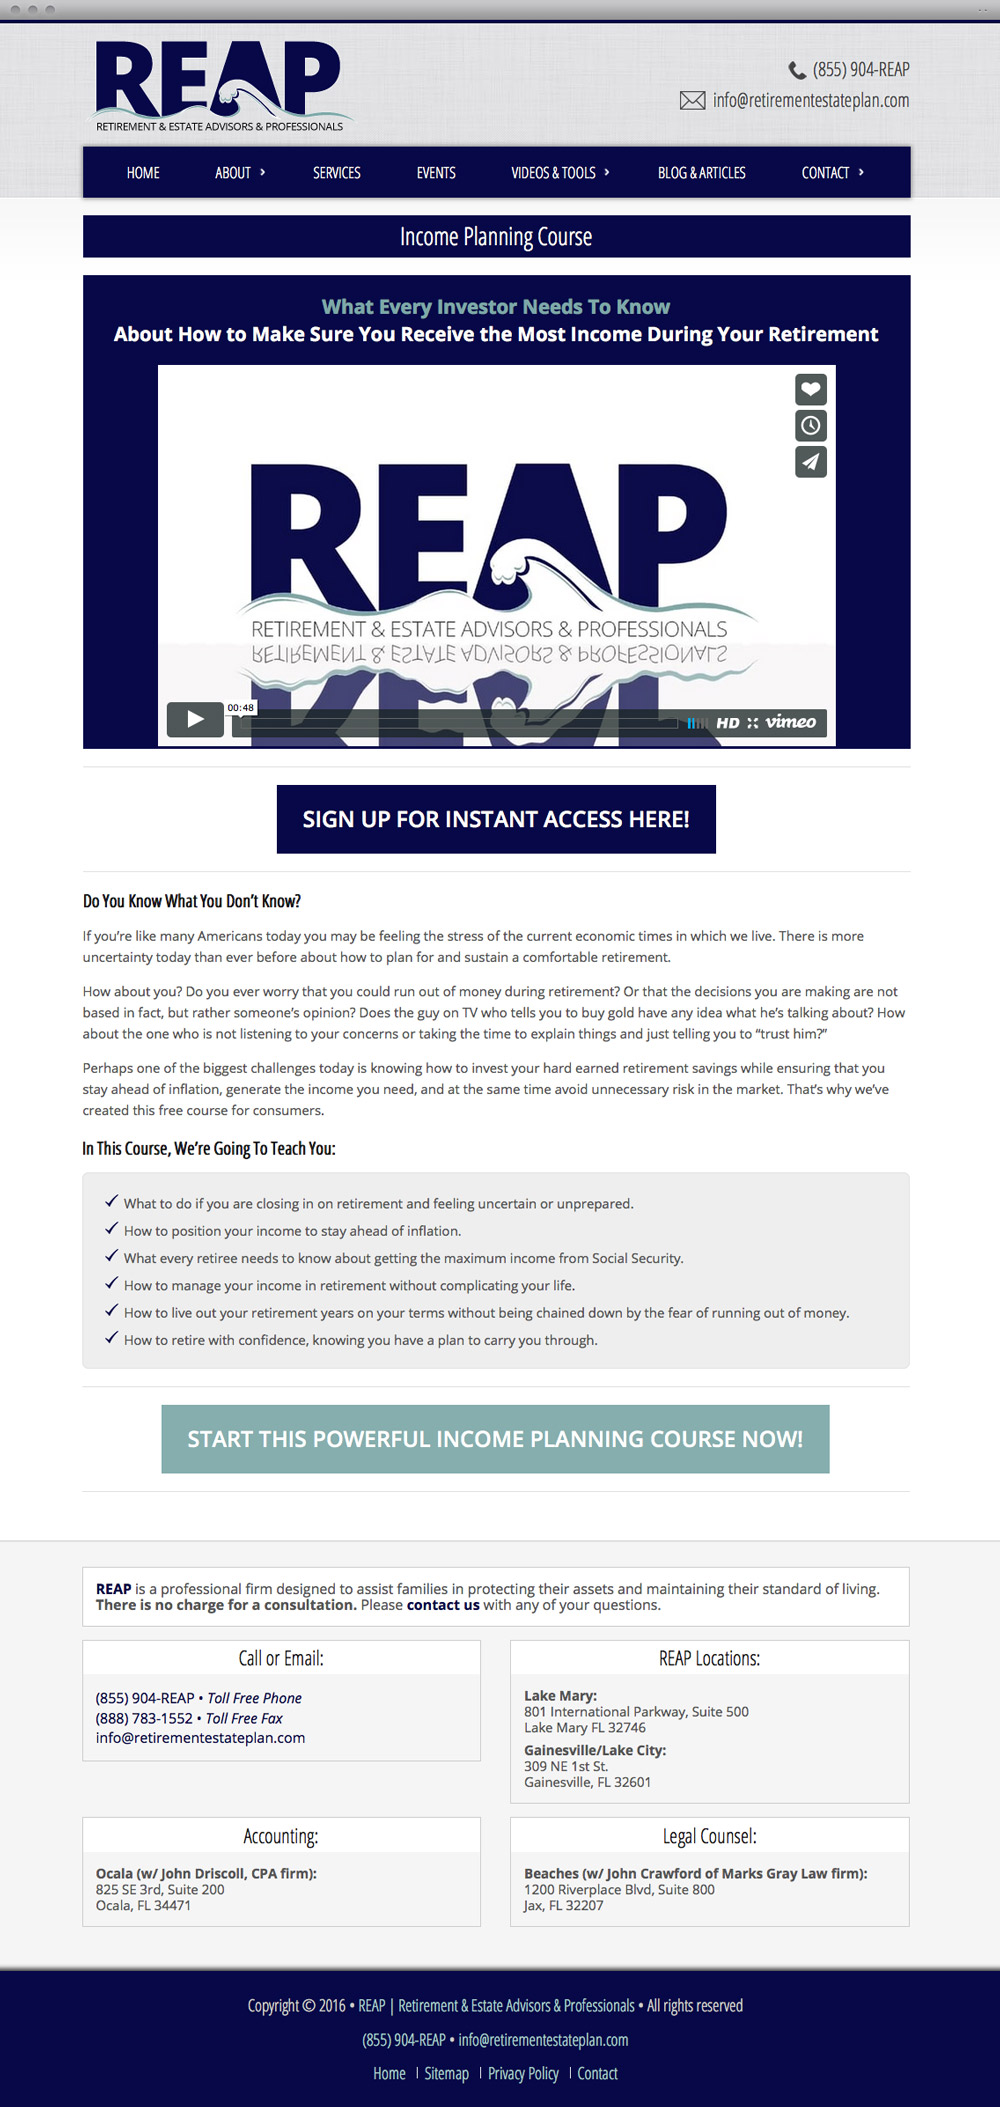 REAP Content Page